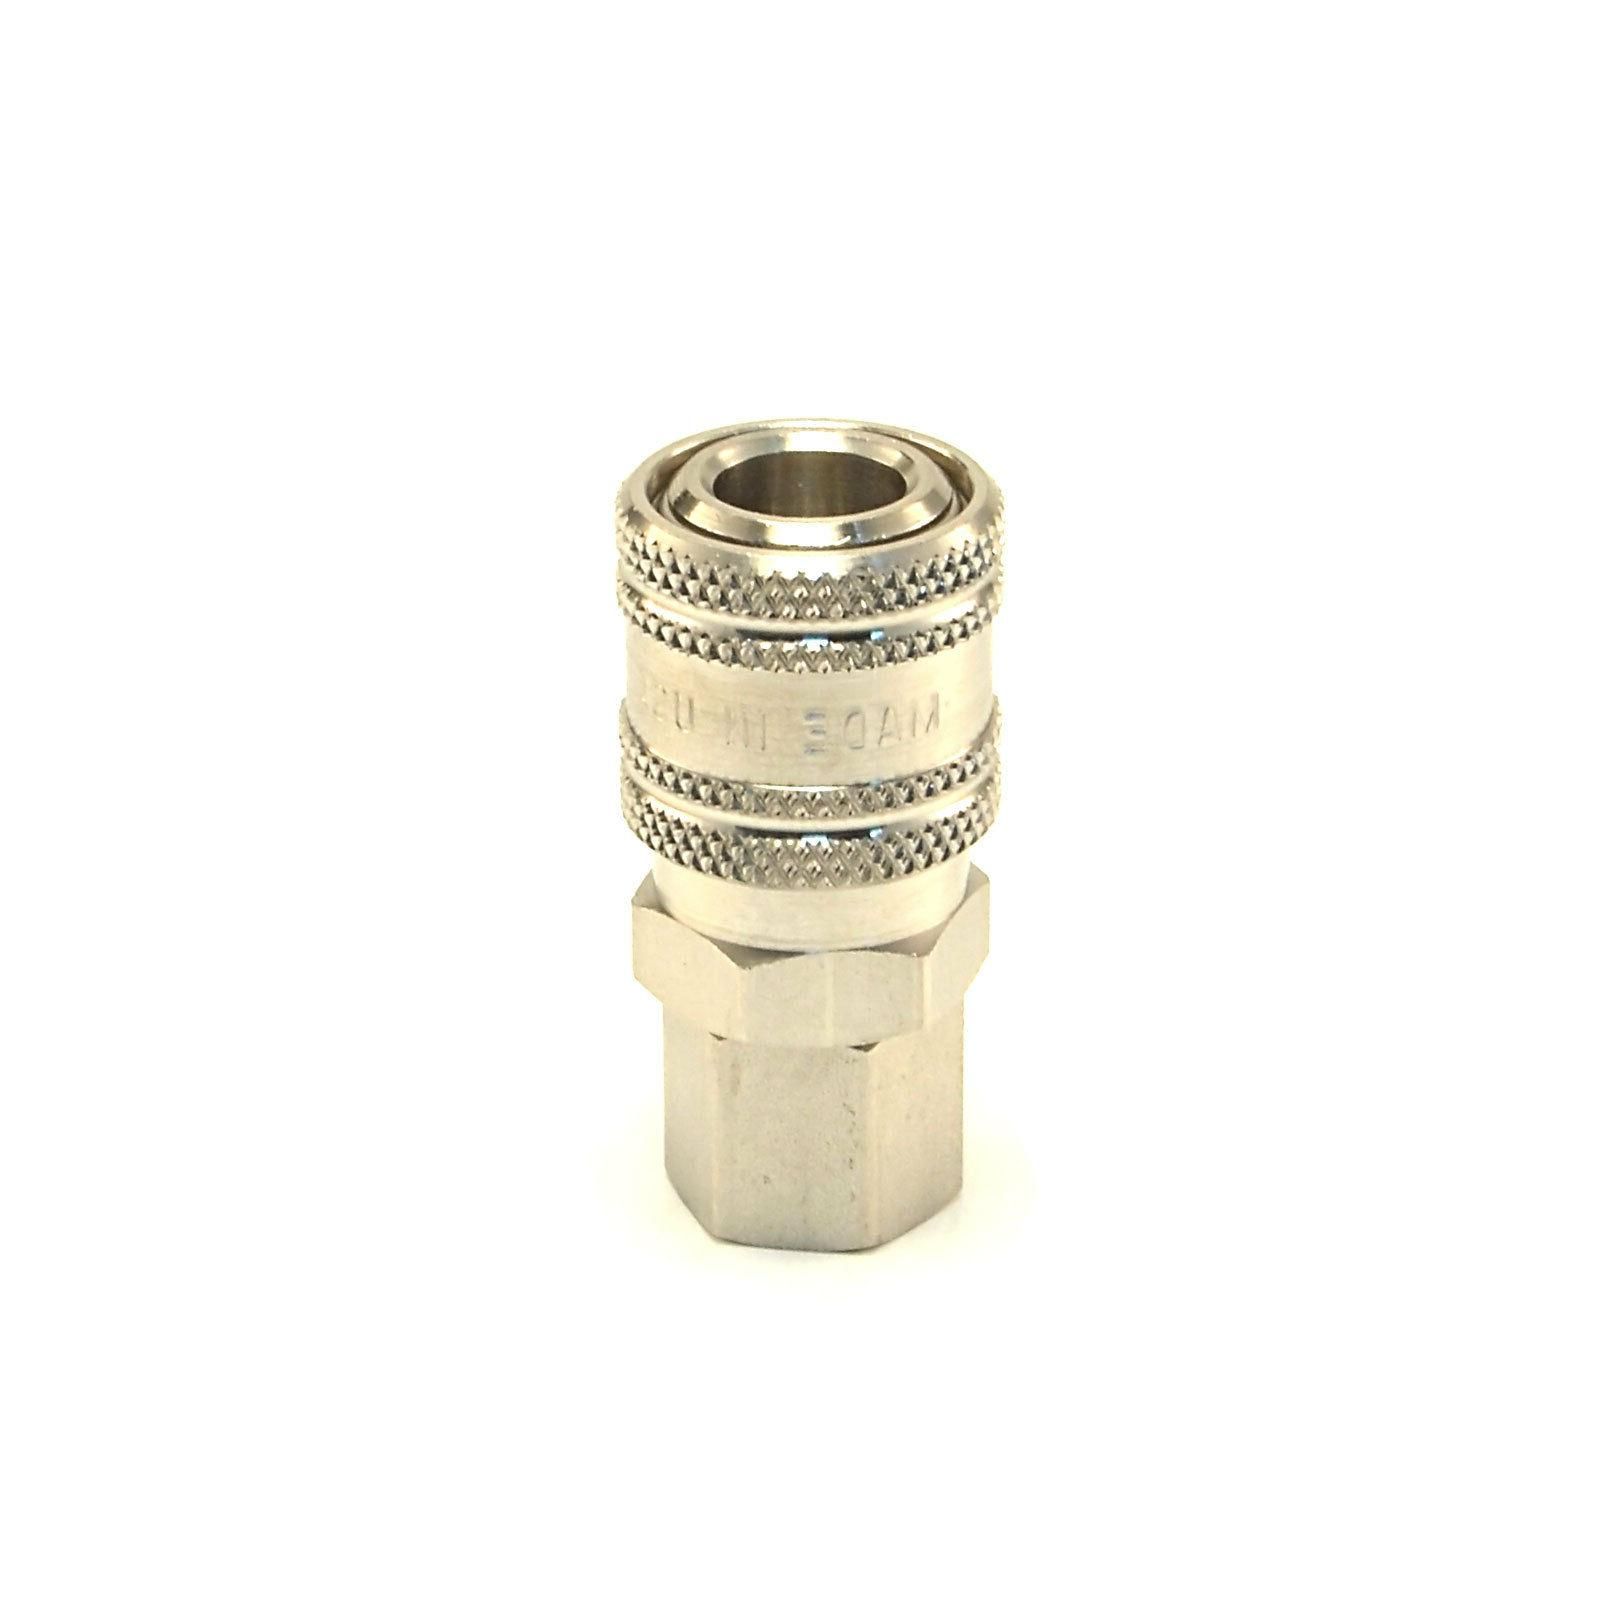 "STAINLESS STEEL Quick Connect Coupler 1/4"" Female NPT Air Ho"